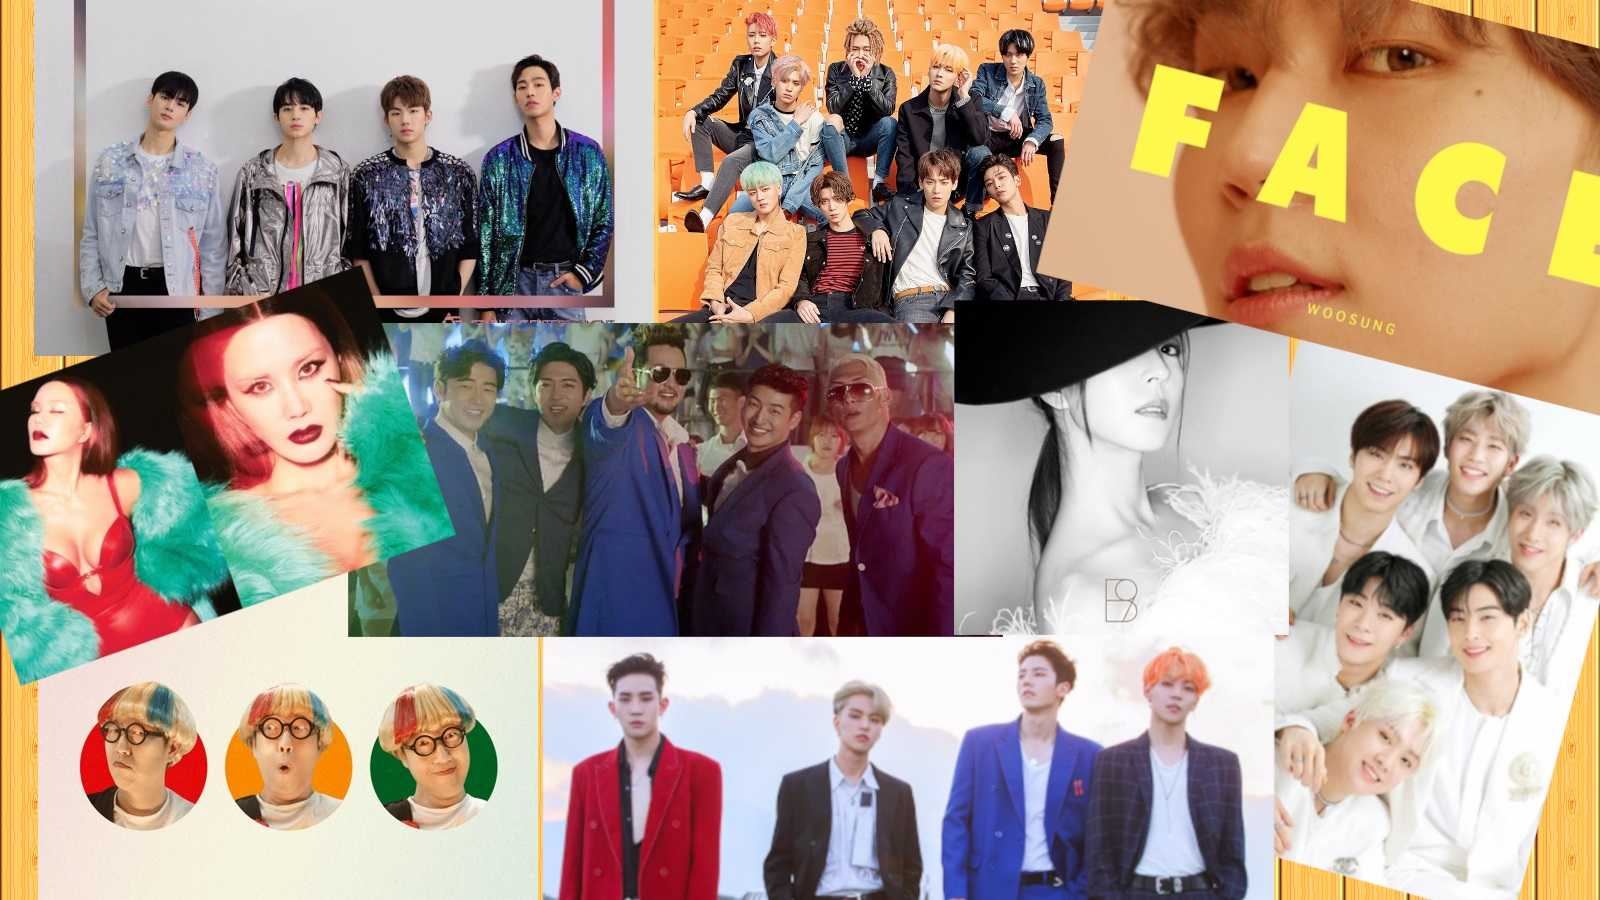 Underrated Summer Kpop Playlist © All rights reserved.